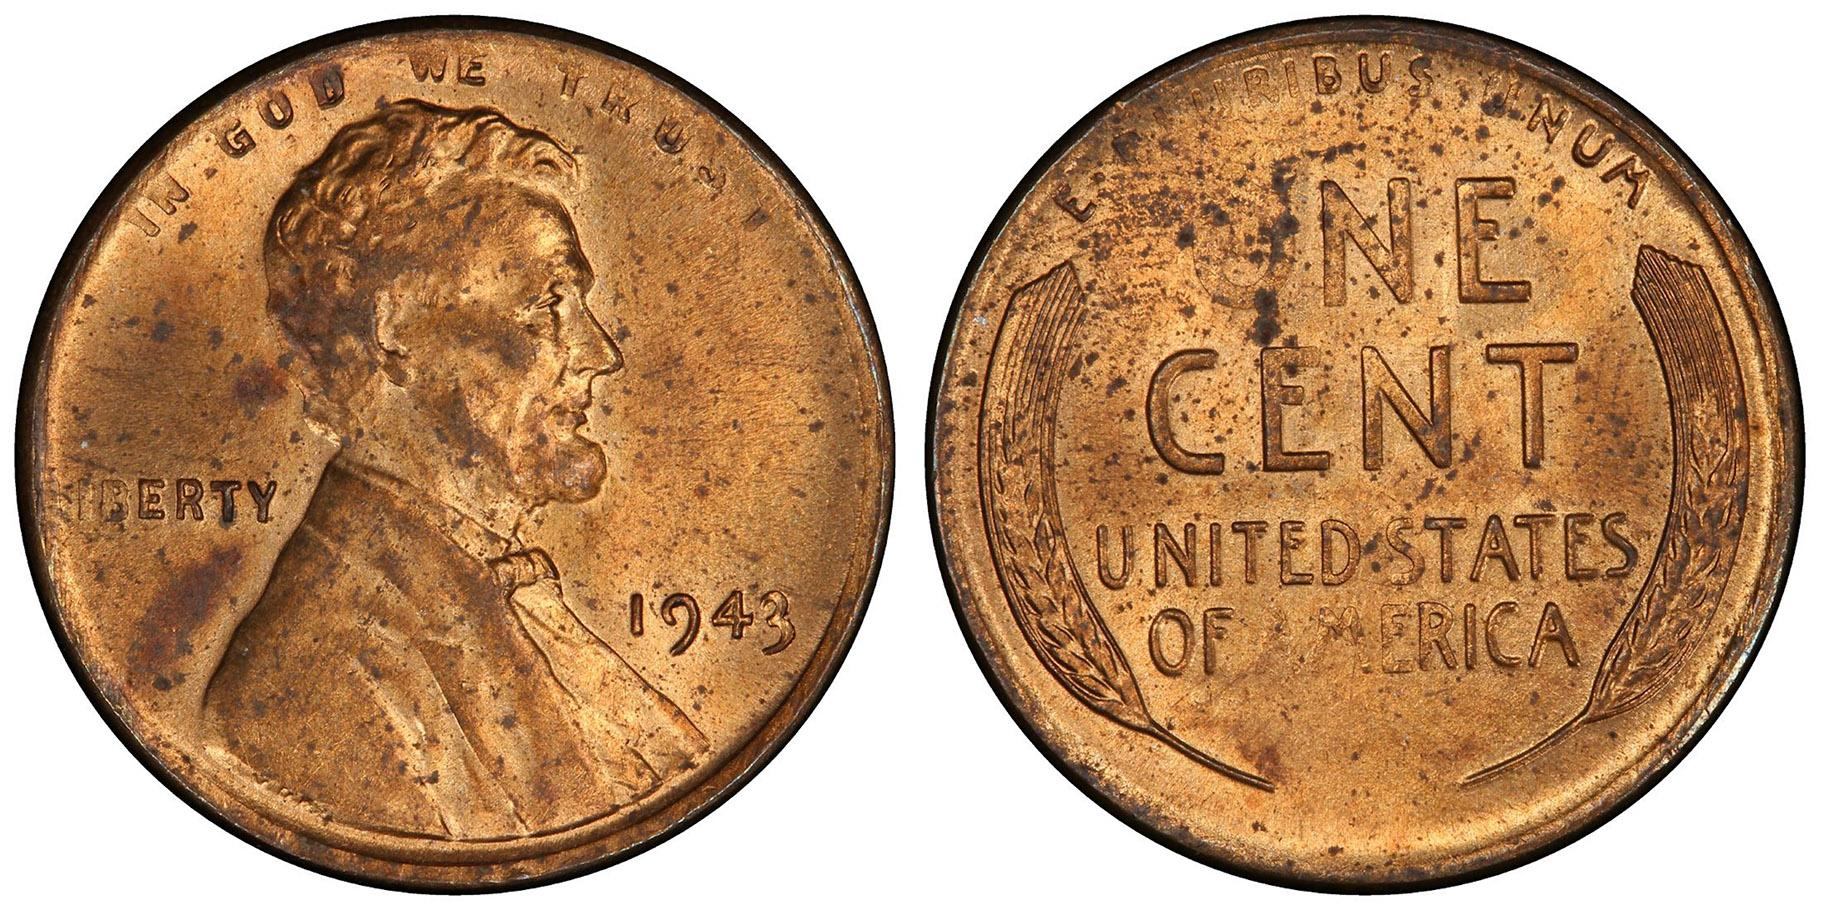 Lincoln cents were only supposed to be made of zinc-coated steel in 1943 because copper was needed for World War II efforts. But a few pennies were mistakenly made with a bronze alloy. The finest known surviving example, which sold for  million last year, will be publicly displayed at the 2019 World's Fair of Money in Rosemont. (Photo credit: American Numismatic Association)